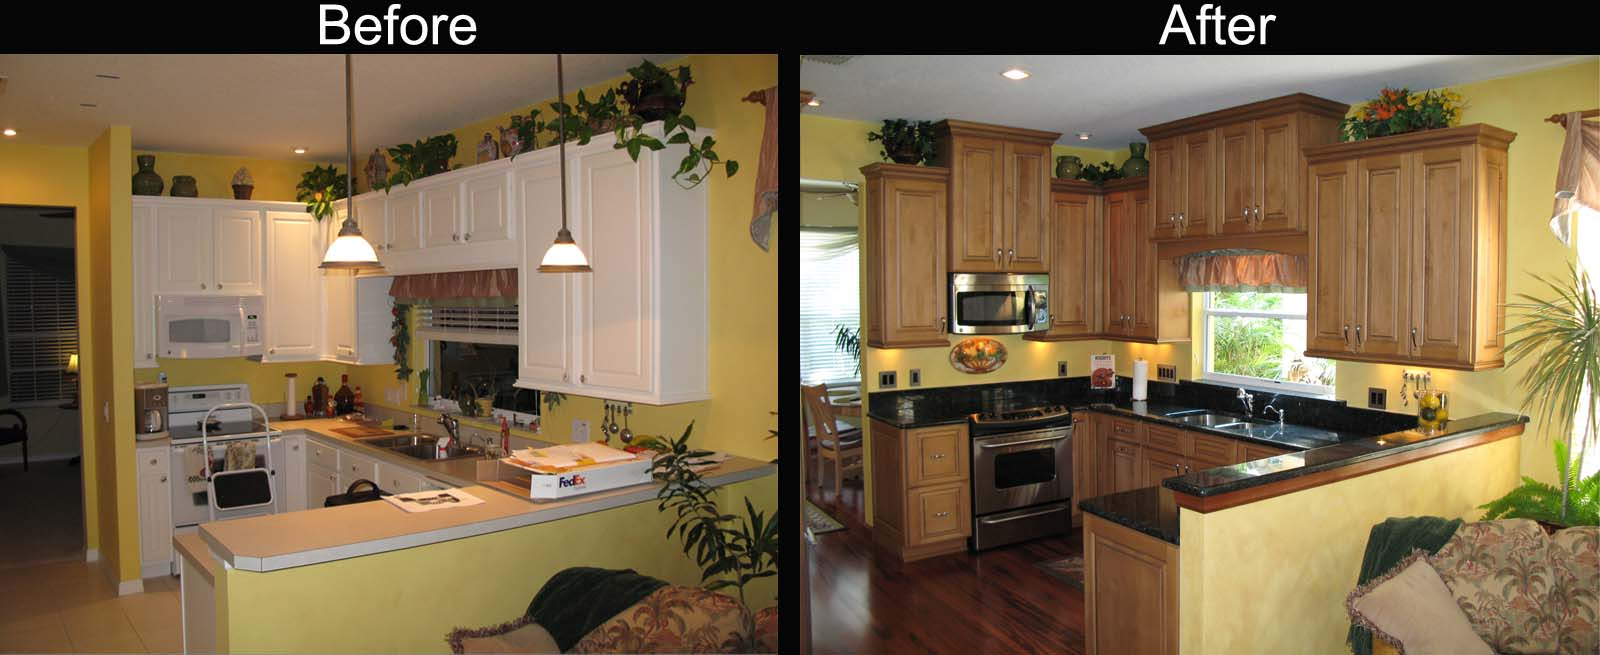 Kitchen decor kitchen remodel before and after for I kitchens and renovations